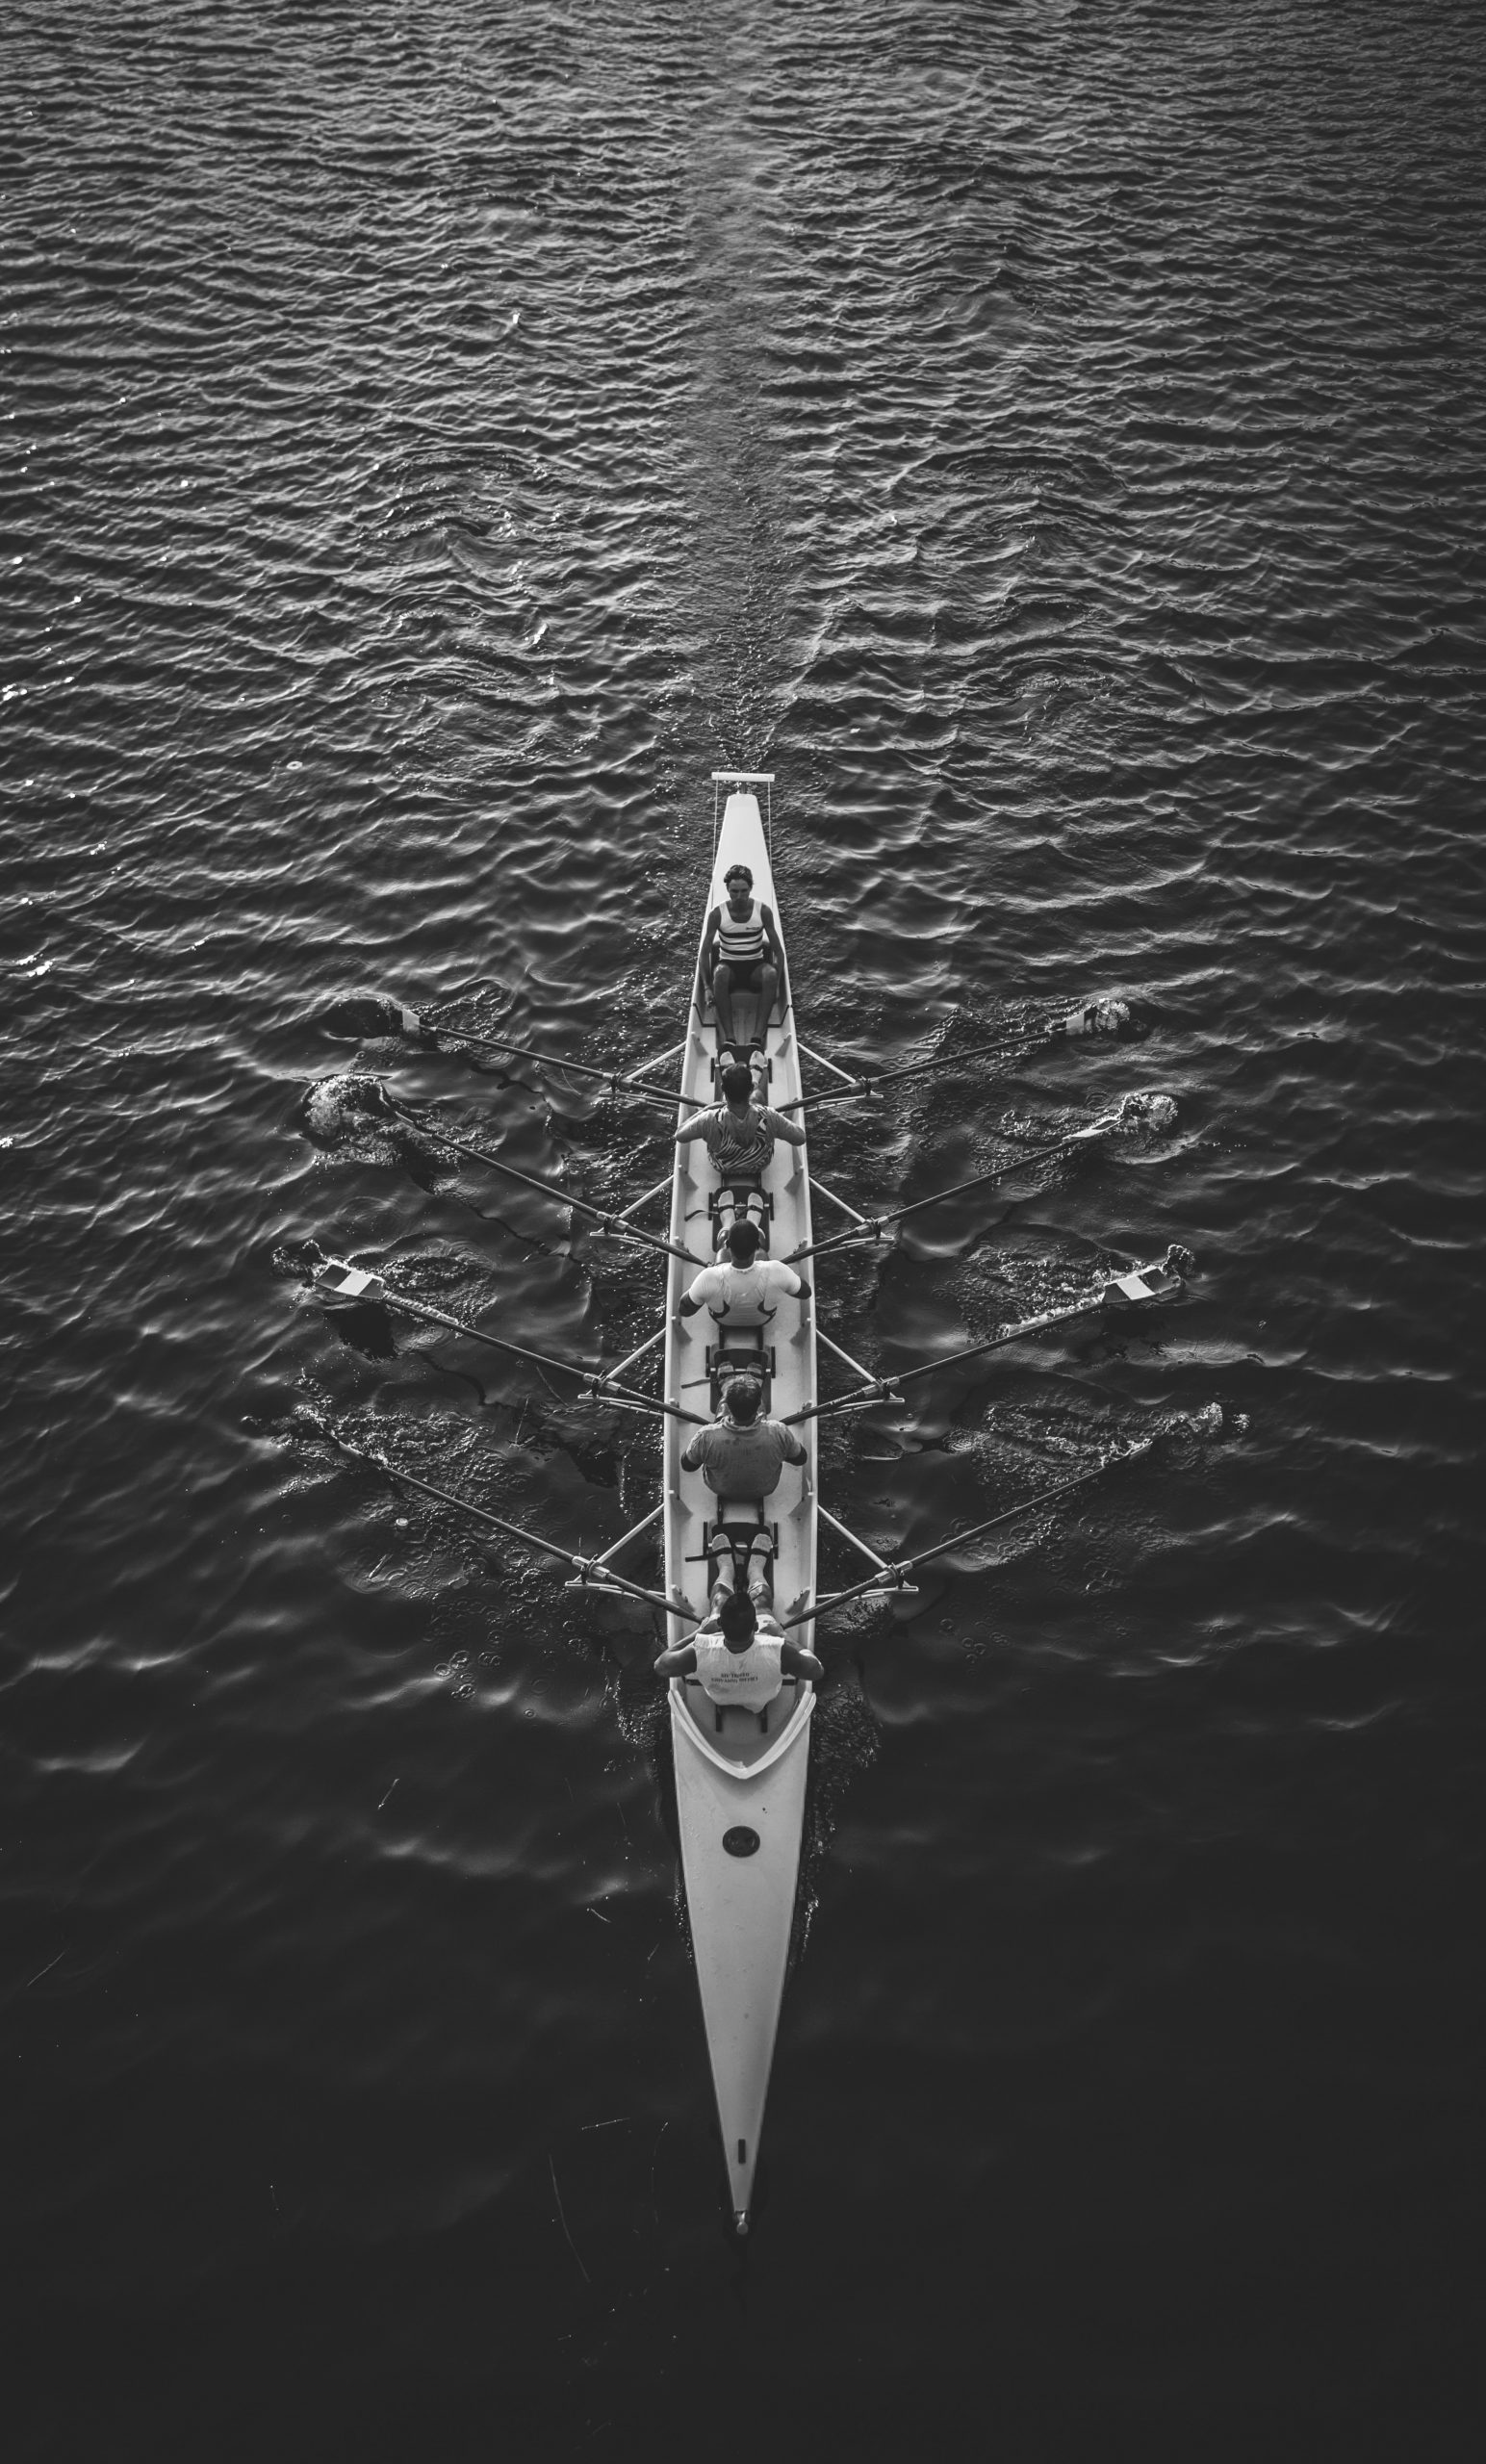 Black and white photo of a rowing team in a boat on the water